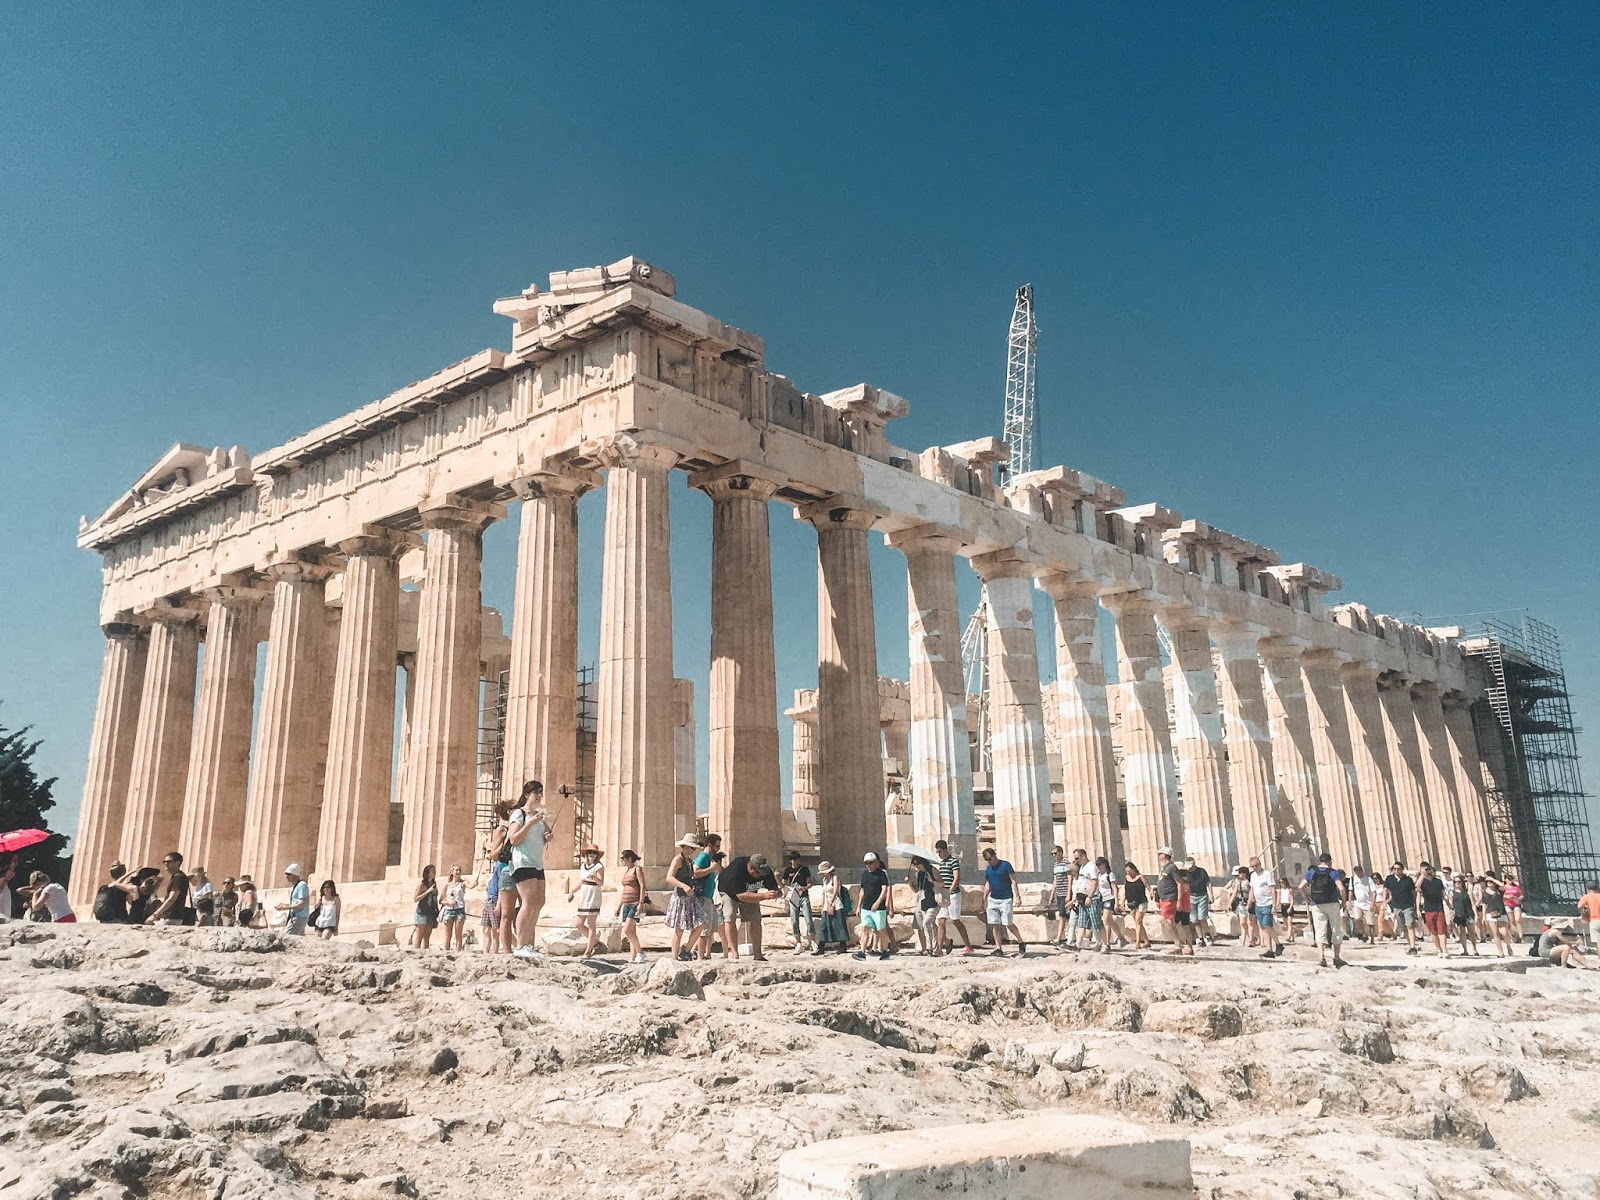 Acropolis of Athens Greece